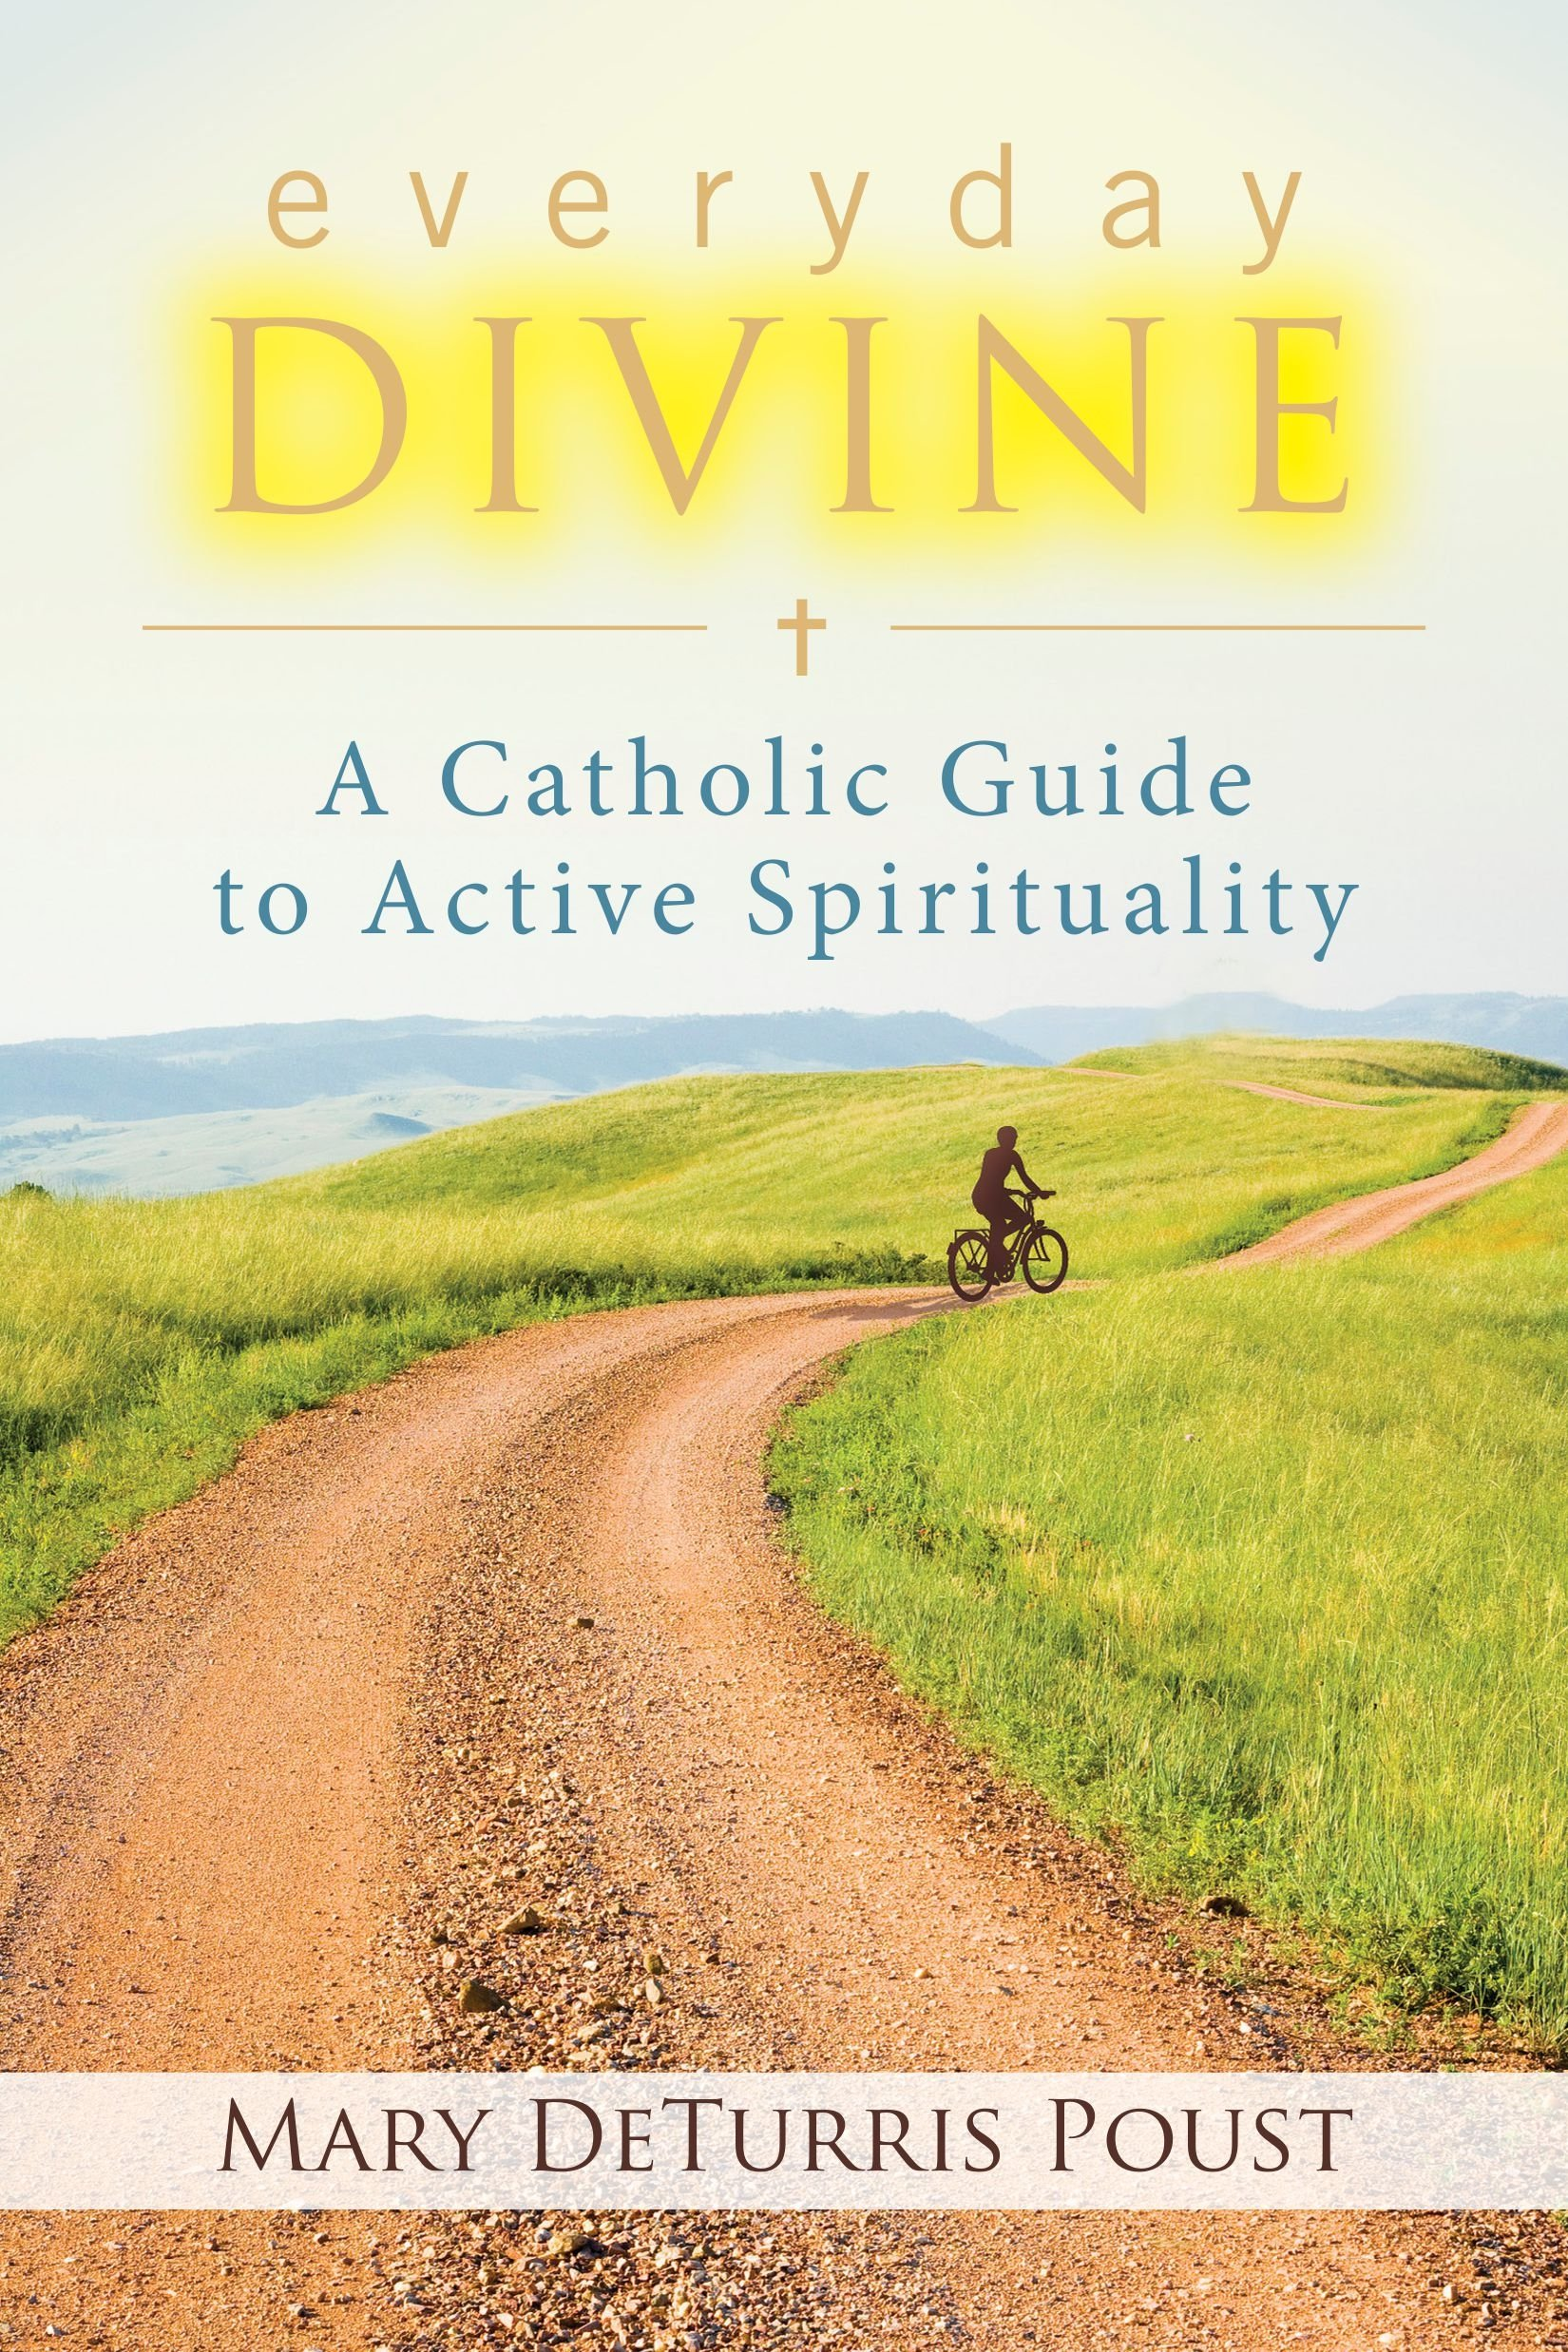 Read Online Everyday Divine: A Catholic Guide to Active Spirituality PDF